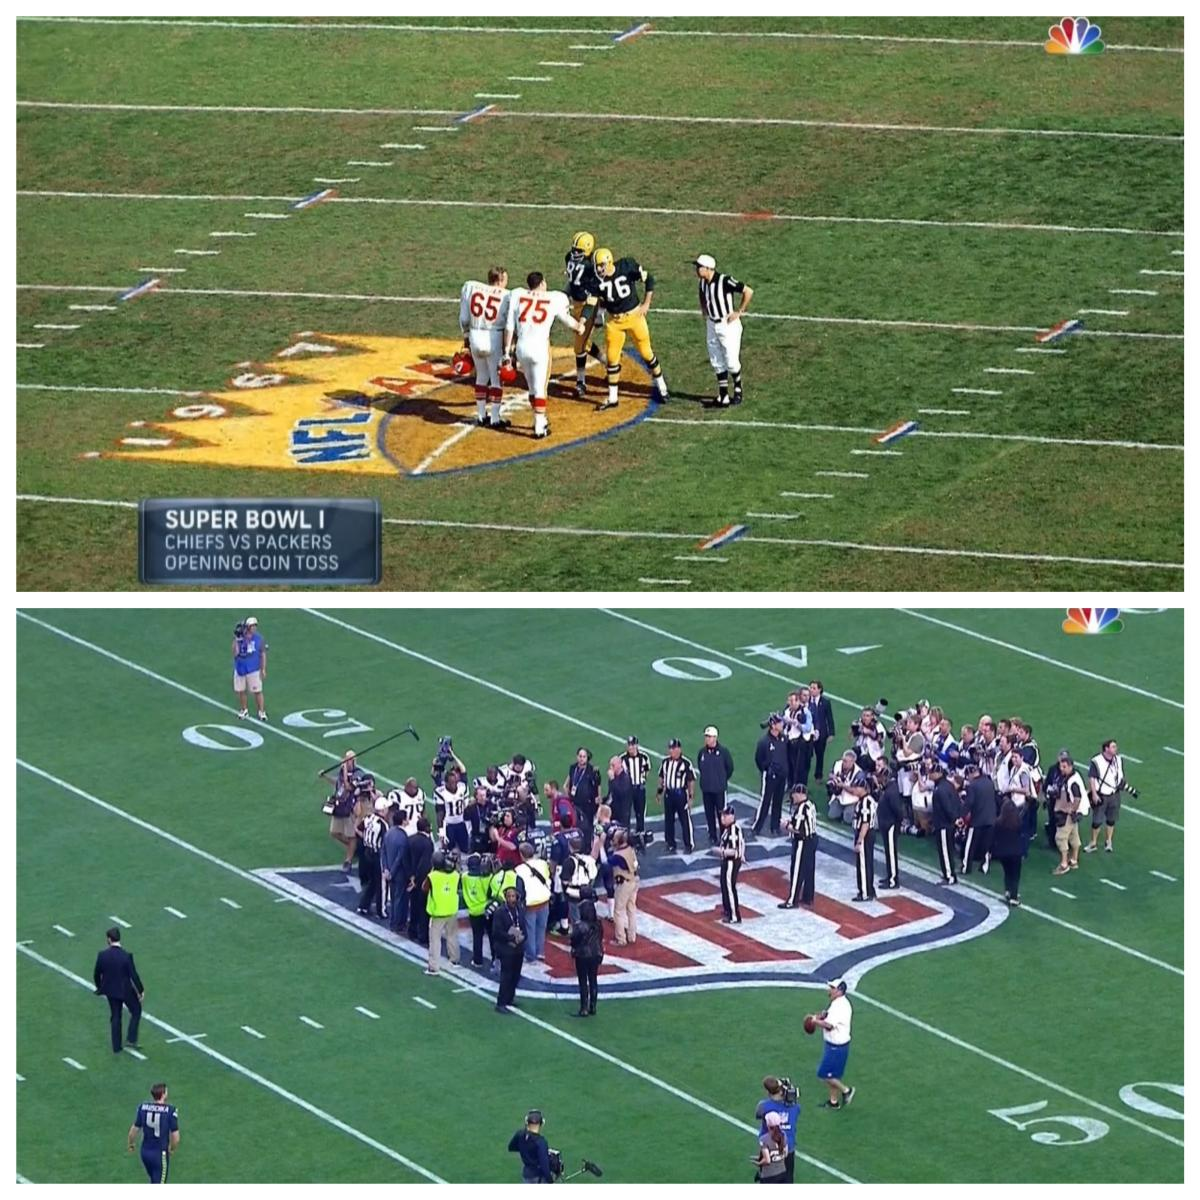 Then and Now. #SB49 http://t.co/IkAluVaMYM